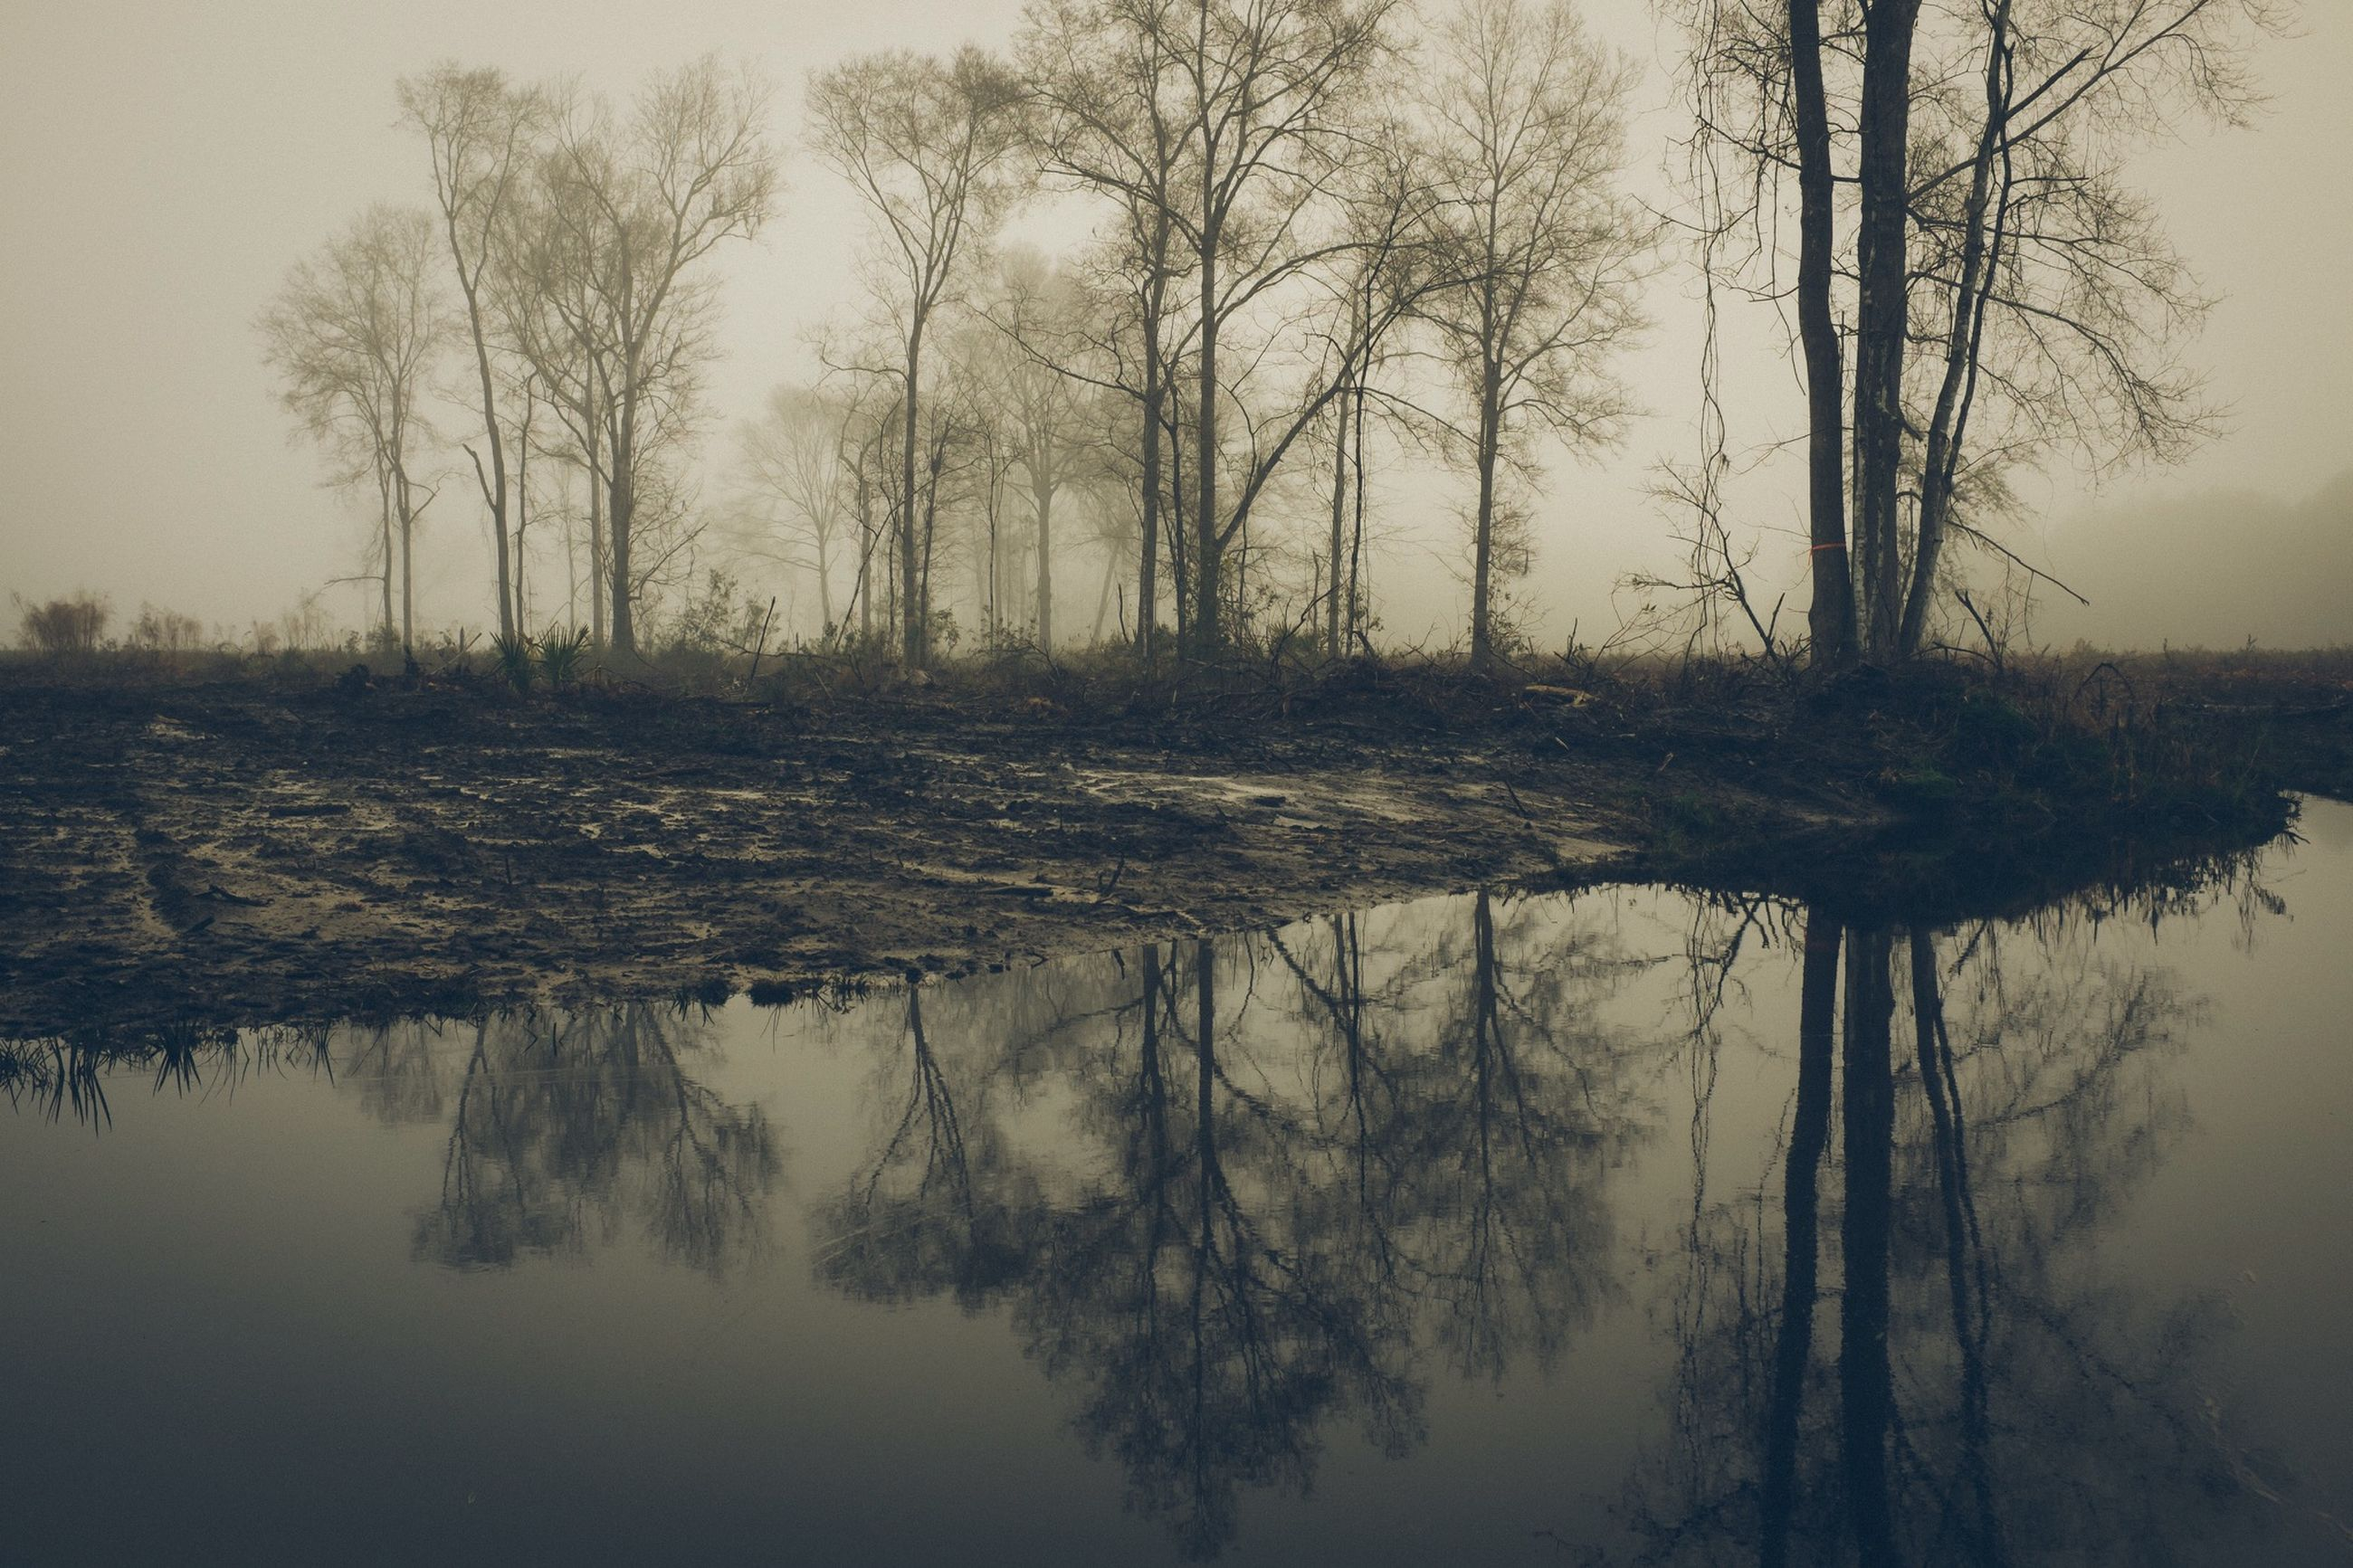 water, tranquility, tree, tranquil scene, reflection, lake, scenics, bare tree, beauty in nature, nature, waterfront, standing water, branch, sky, non-urban scene, river, tree trunk, idyllic, calm, landscape